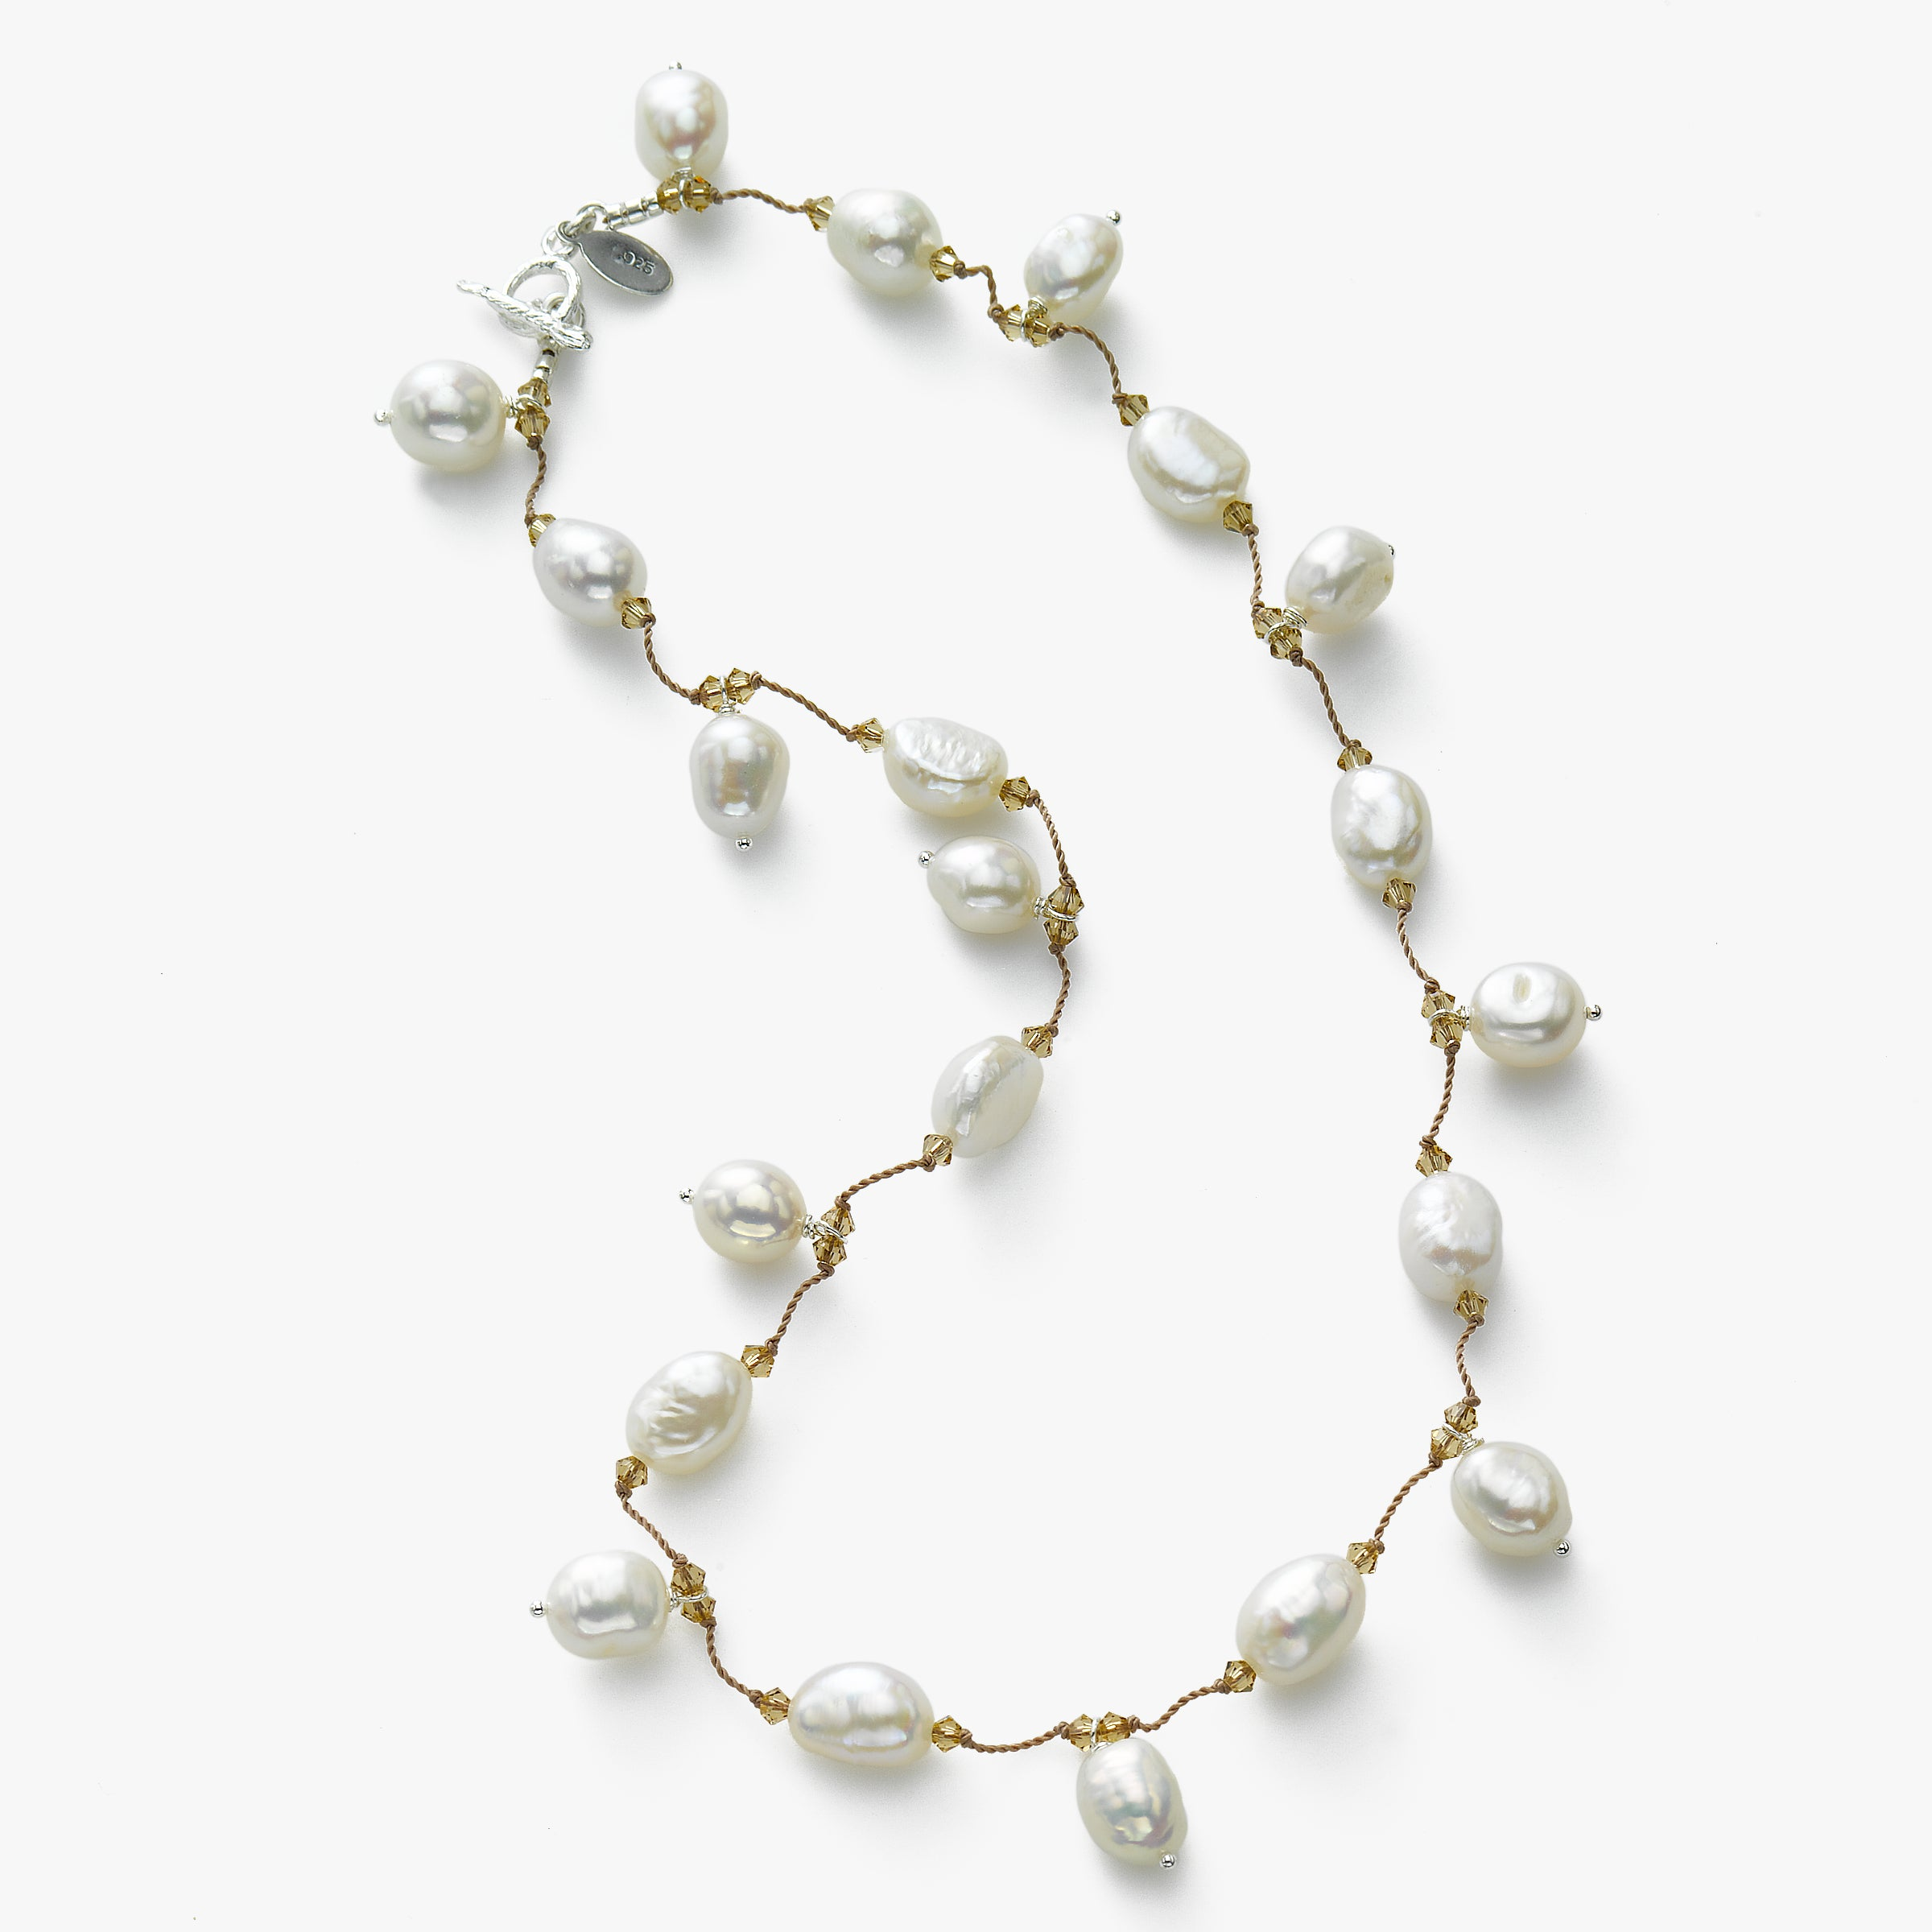 Dangle Freshwater Pearl and Swarovski Crystal Necklace, Sterling Silver, by Margo Morrison